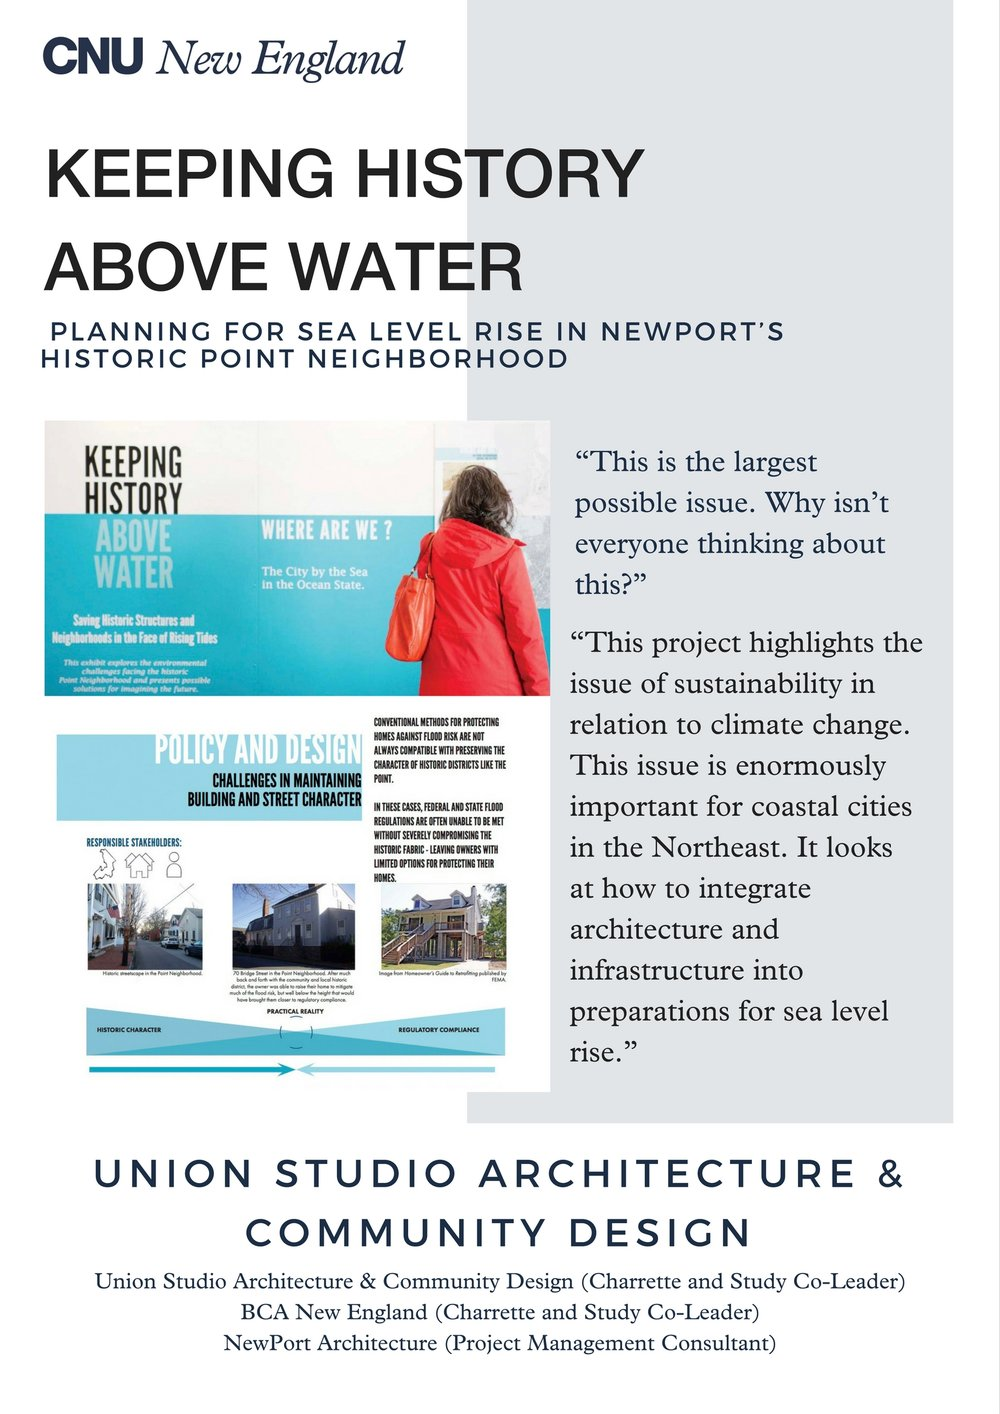 #5 Urbanism Award - KEEPING HISTORY ABOVE WATER Planning for Sea Level Rise in Newport's Historic Point Neighborhood.jpg